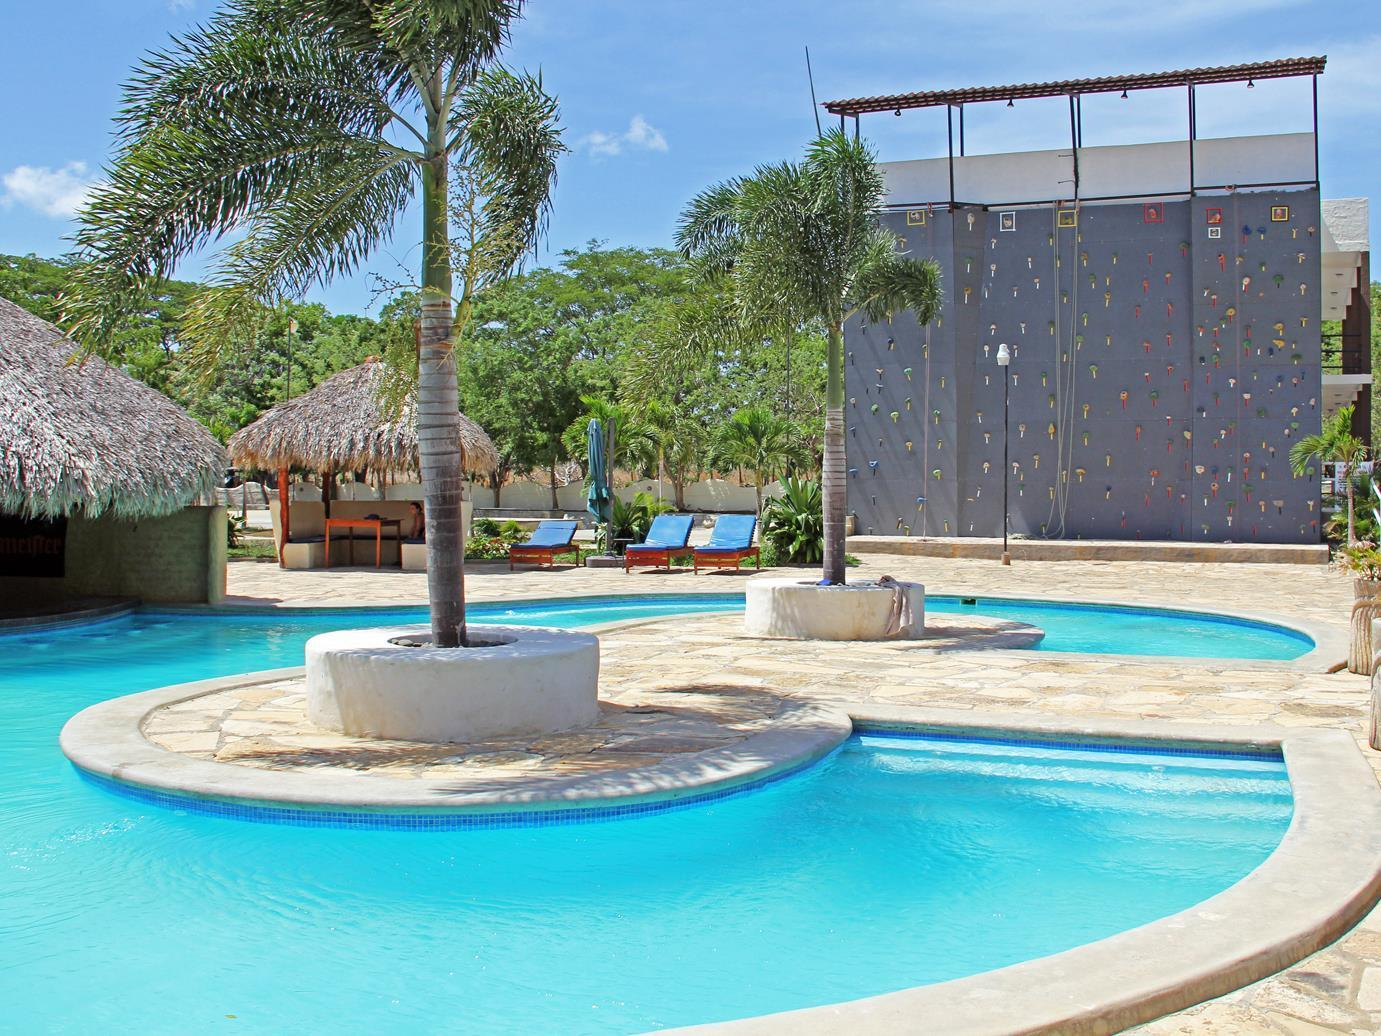 Surf Ranch Hotel & Resort - Hotels and Accommodation in Nicaragua, Central America And Caribbean